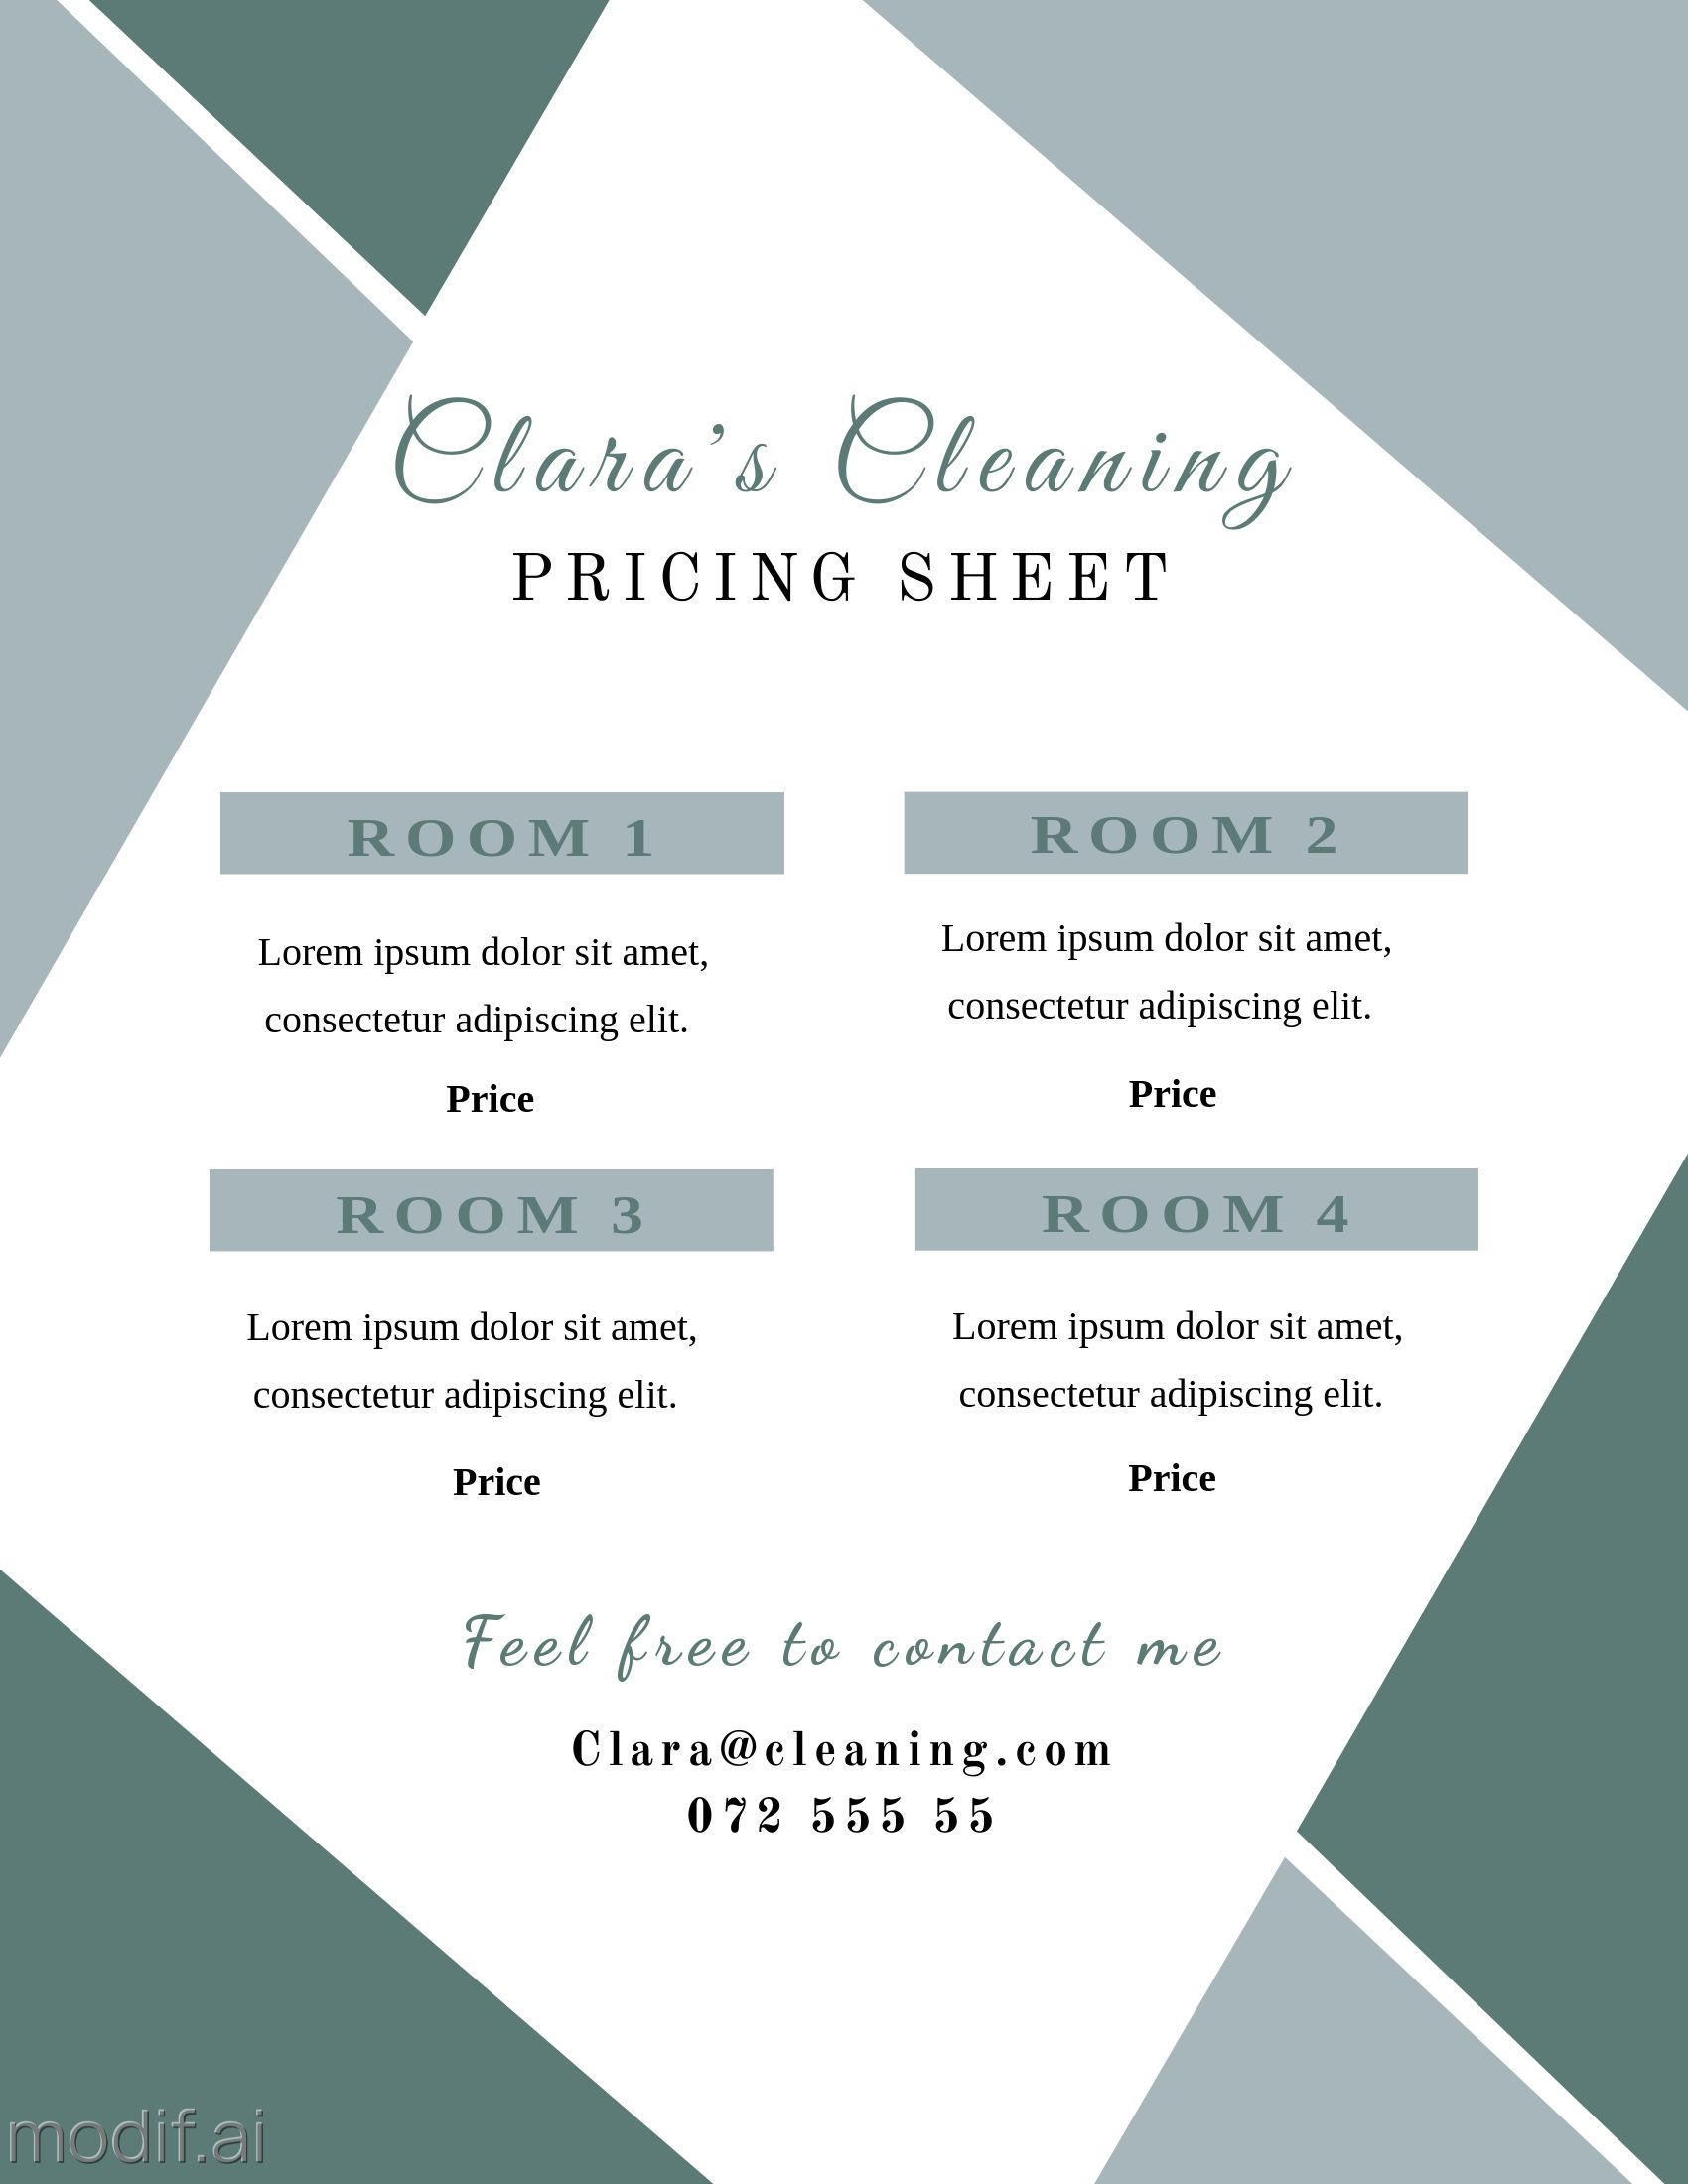 Cleaning Service Pricing Sheet Template